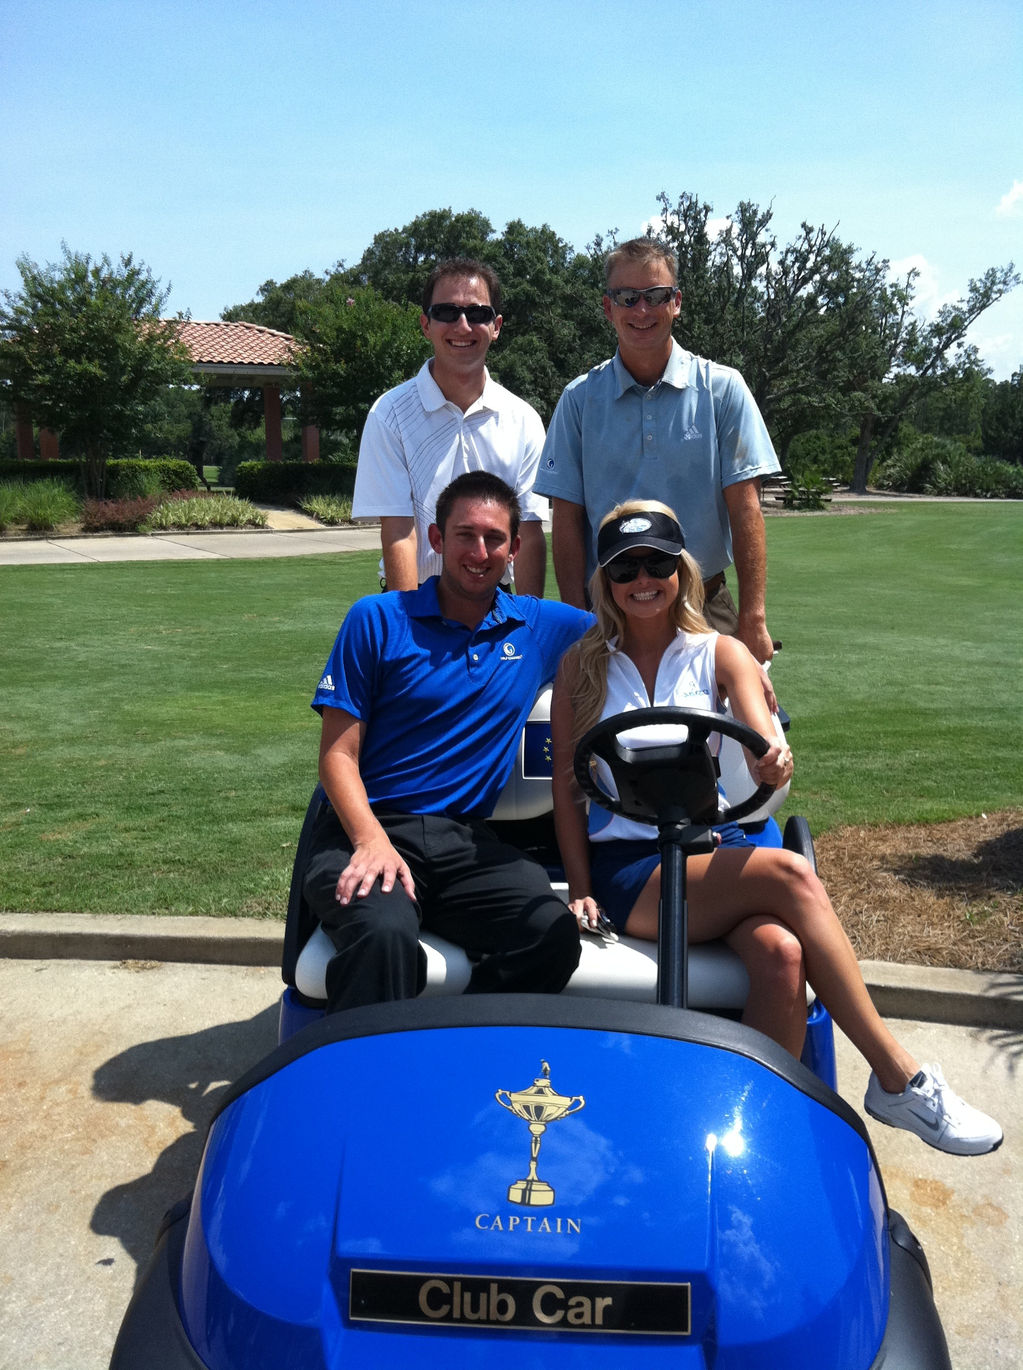 Crew on Euro Ryder Cup Cart